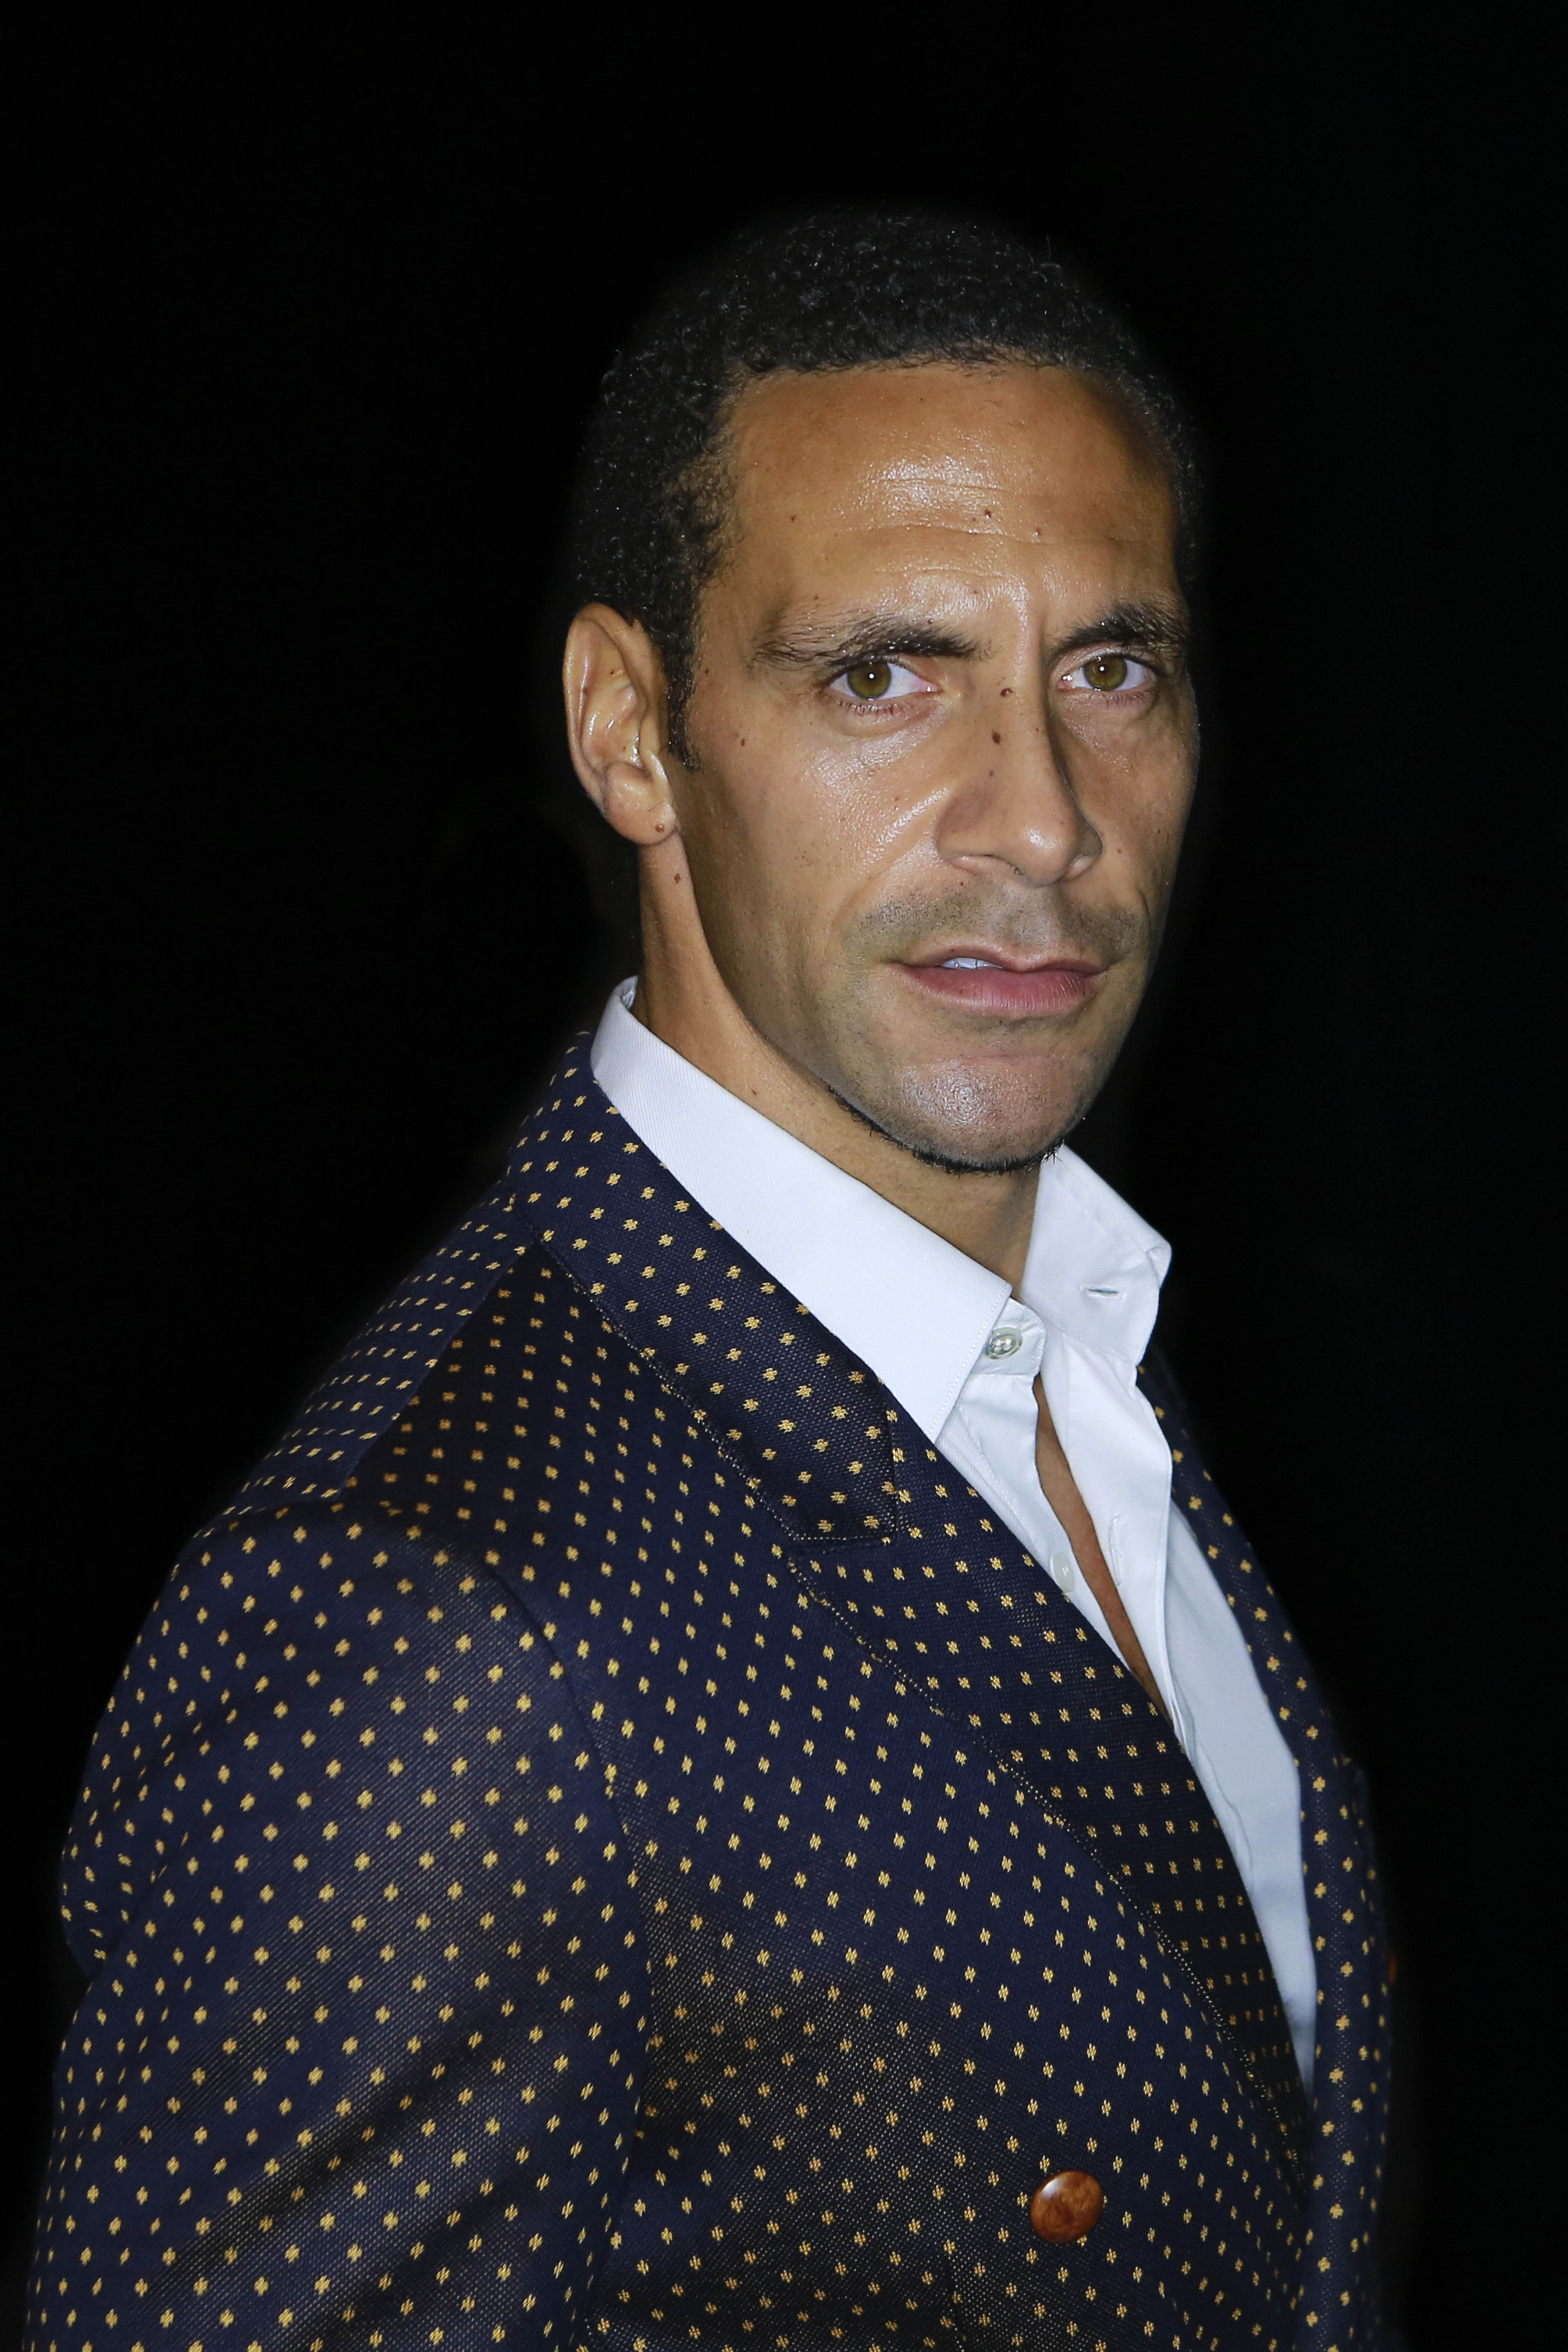 The 39-year old son of father Julian Ferdinand and mother Janice Lavender  Rio Ferdinand in 2018 photo. Rio Ferdinand earned a  million dollar salary - leaving the net worth at 75 million in 2018